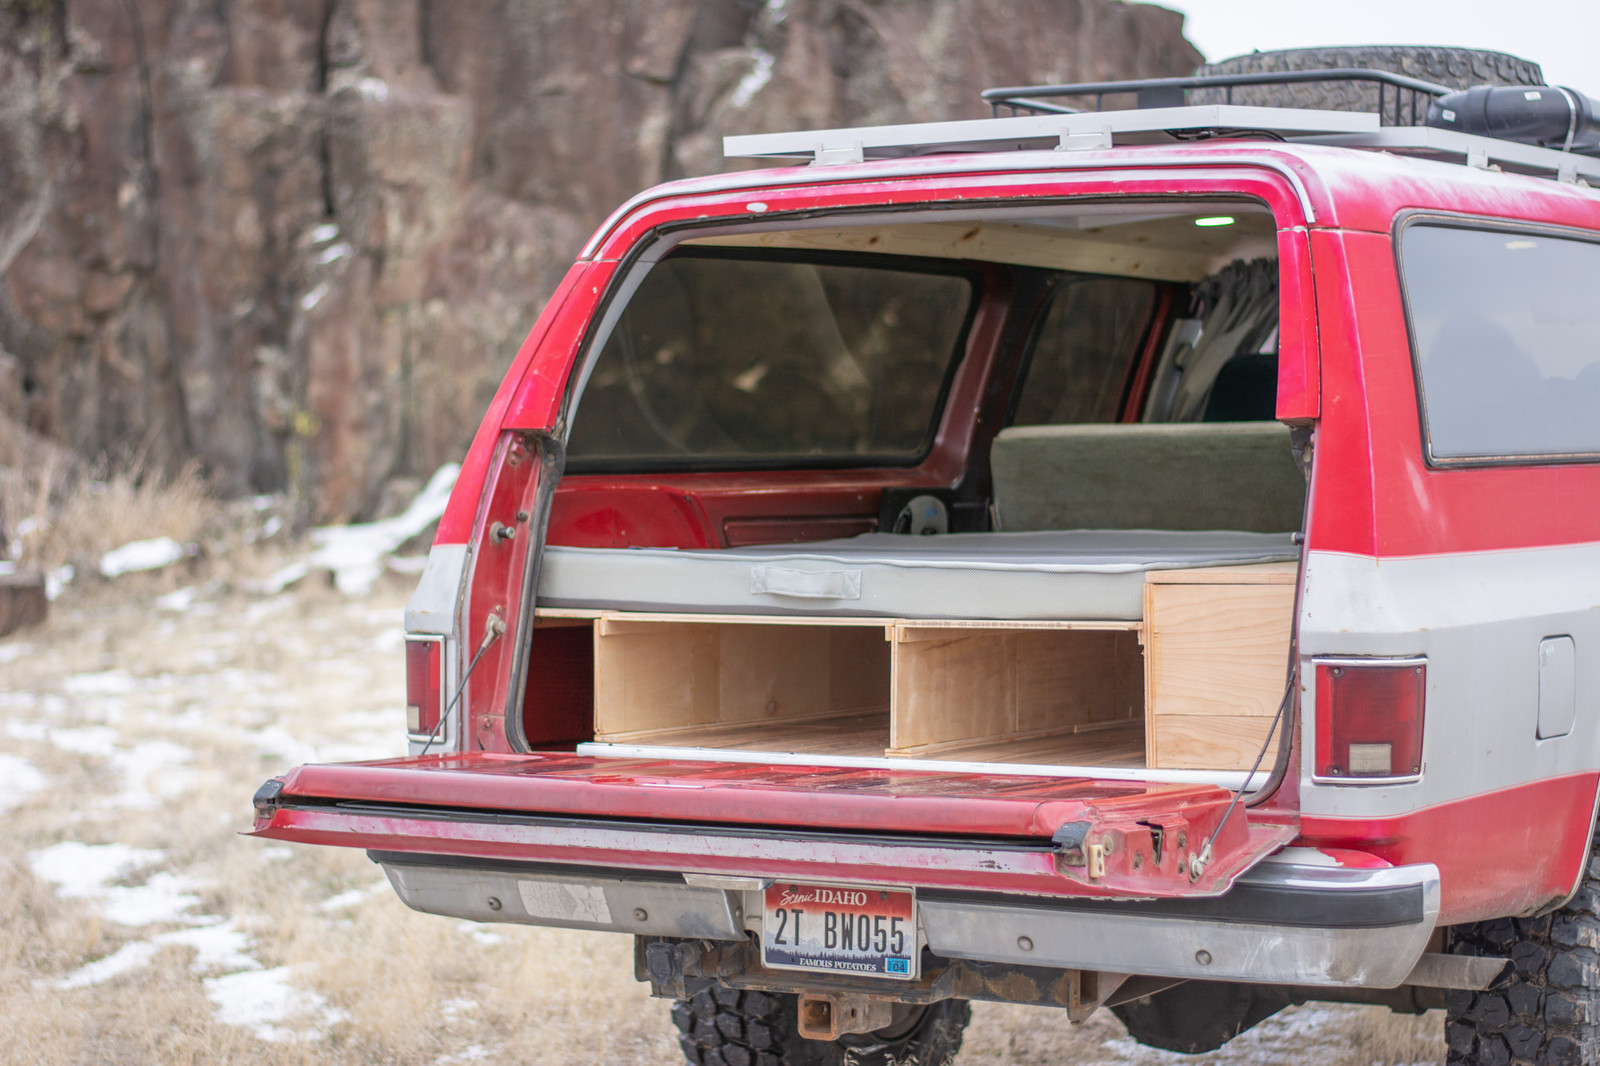 Suboverland 4x4 Camper Conversion United States